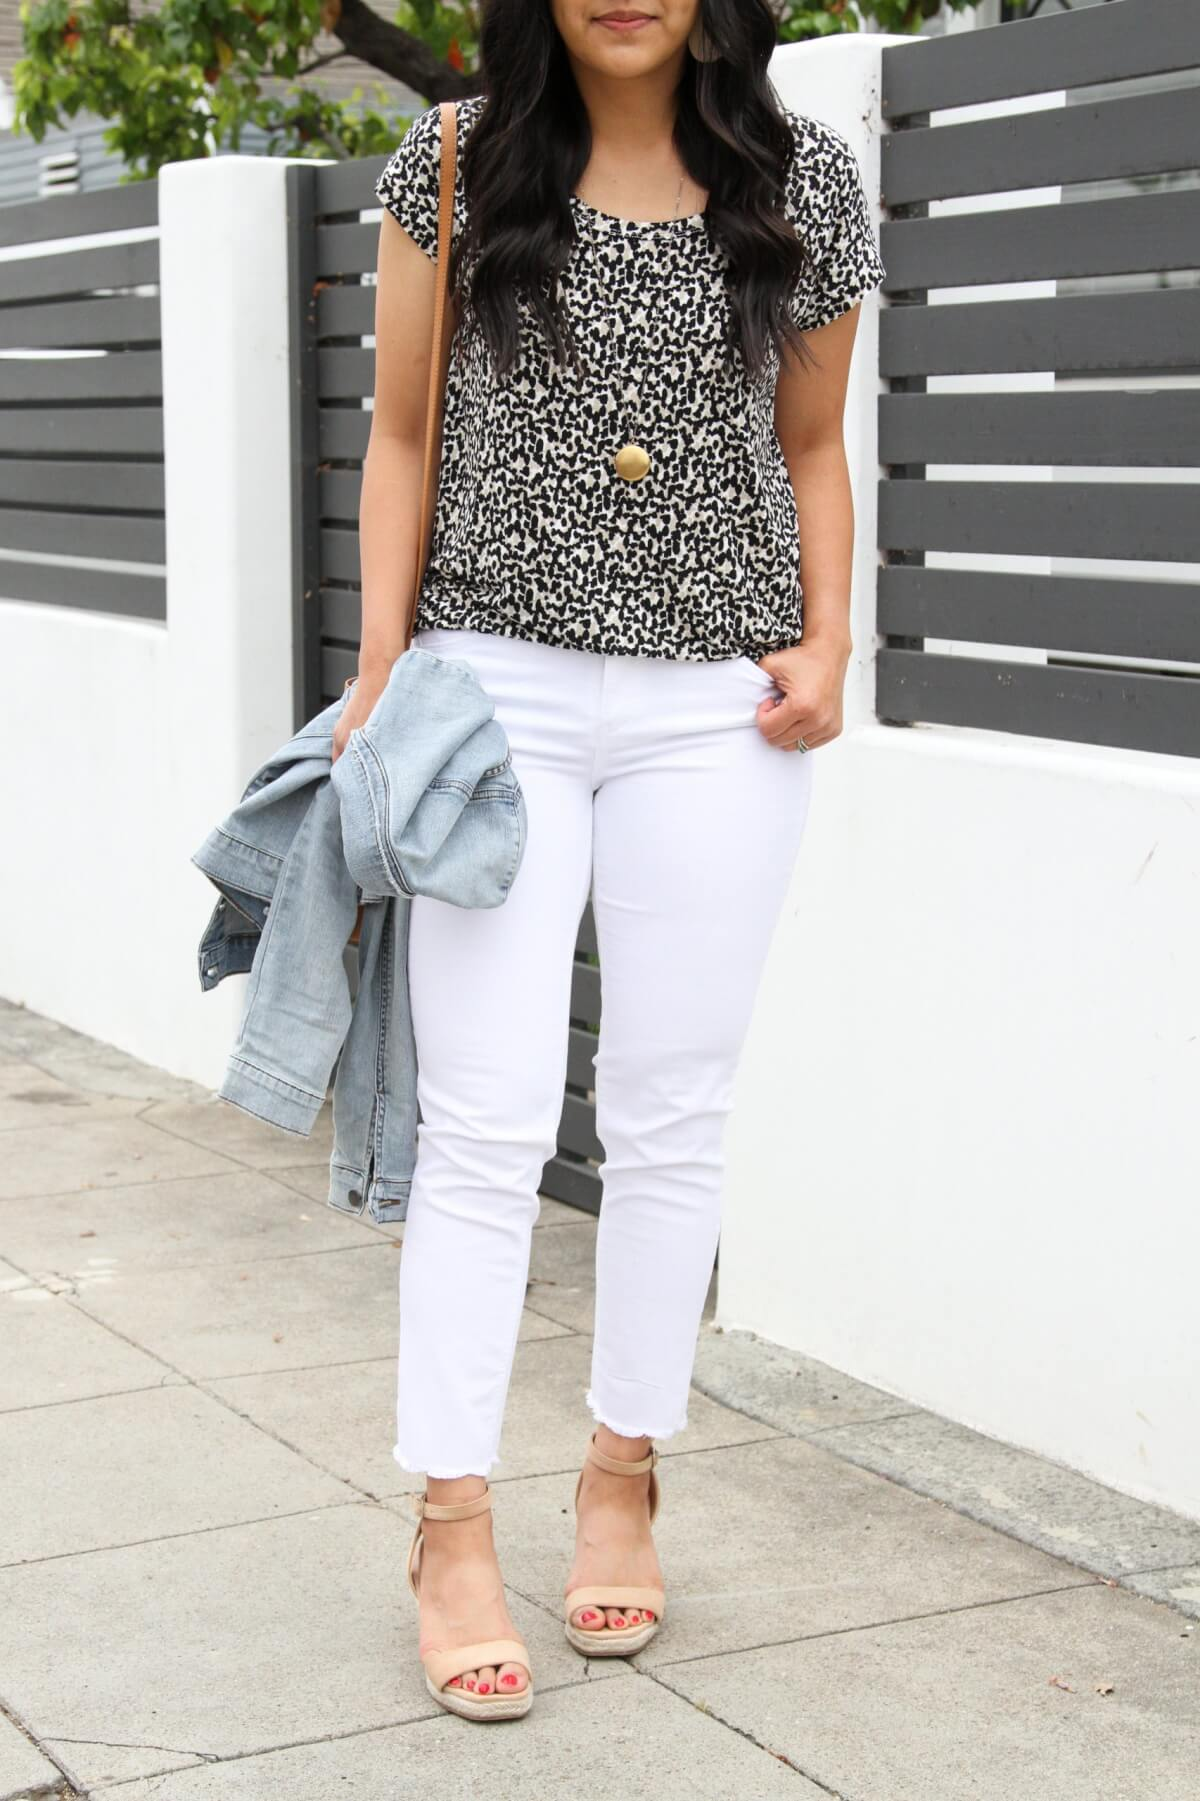 Nicer Casual Outfit: Leopard tee + white jeans + denim jacket + nude wedges + white earrings + pendant necklace + cognac crossbody bag close up